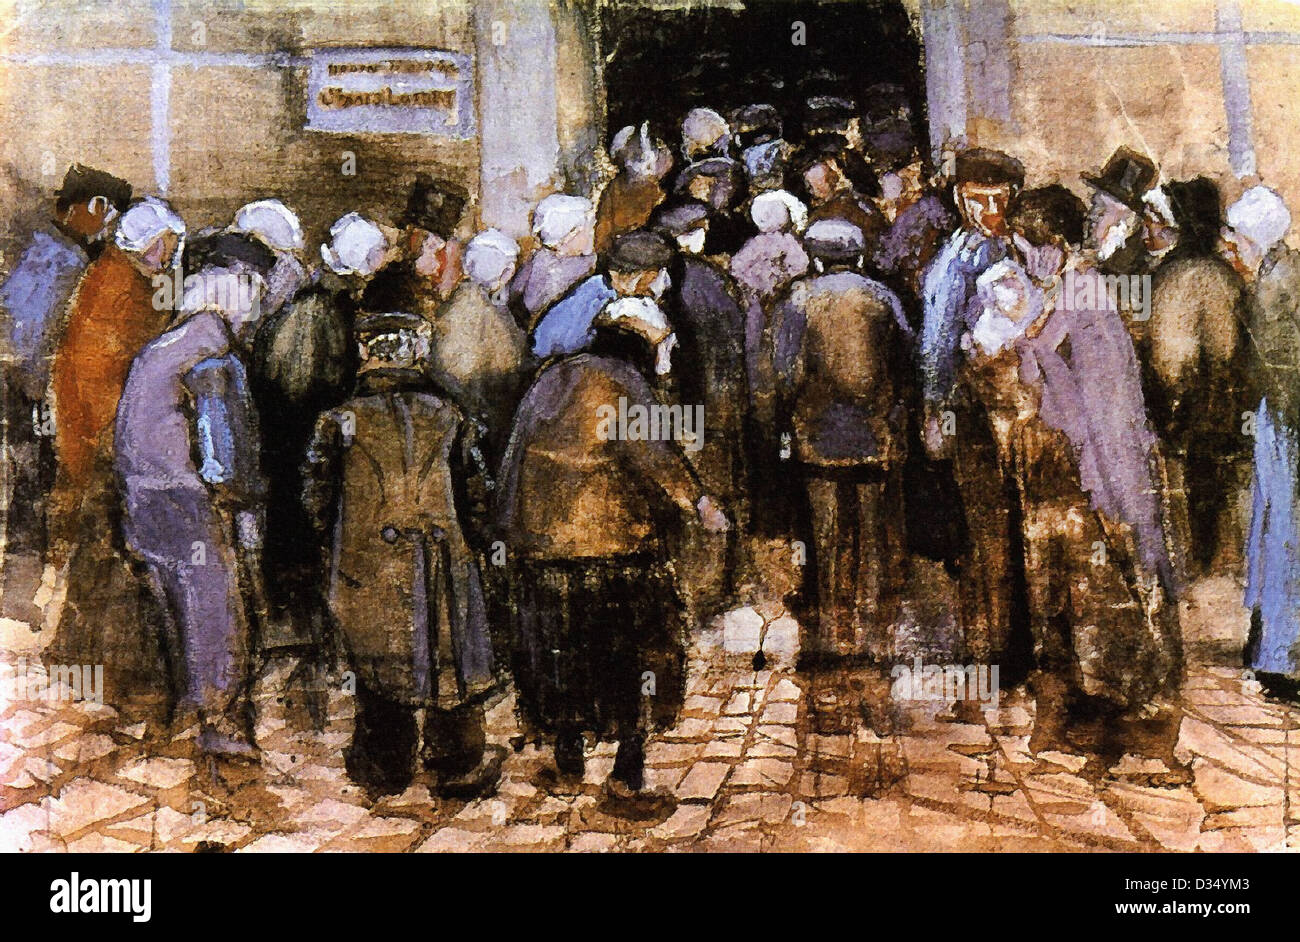 Vincent van Gogh, The State Lottery. 1882. Realism. Oil on canvas. Van Gogh Museum, Amsterdam, Netherlands. - Stock Image